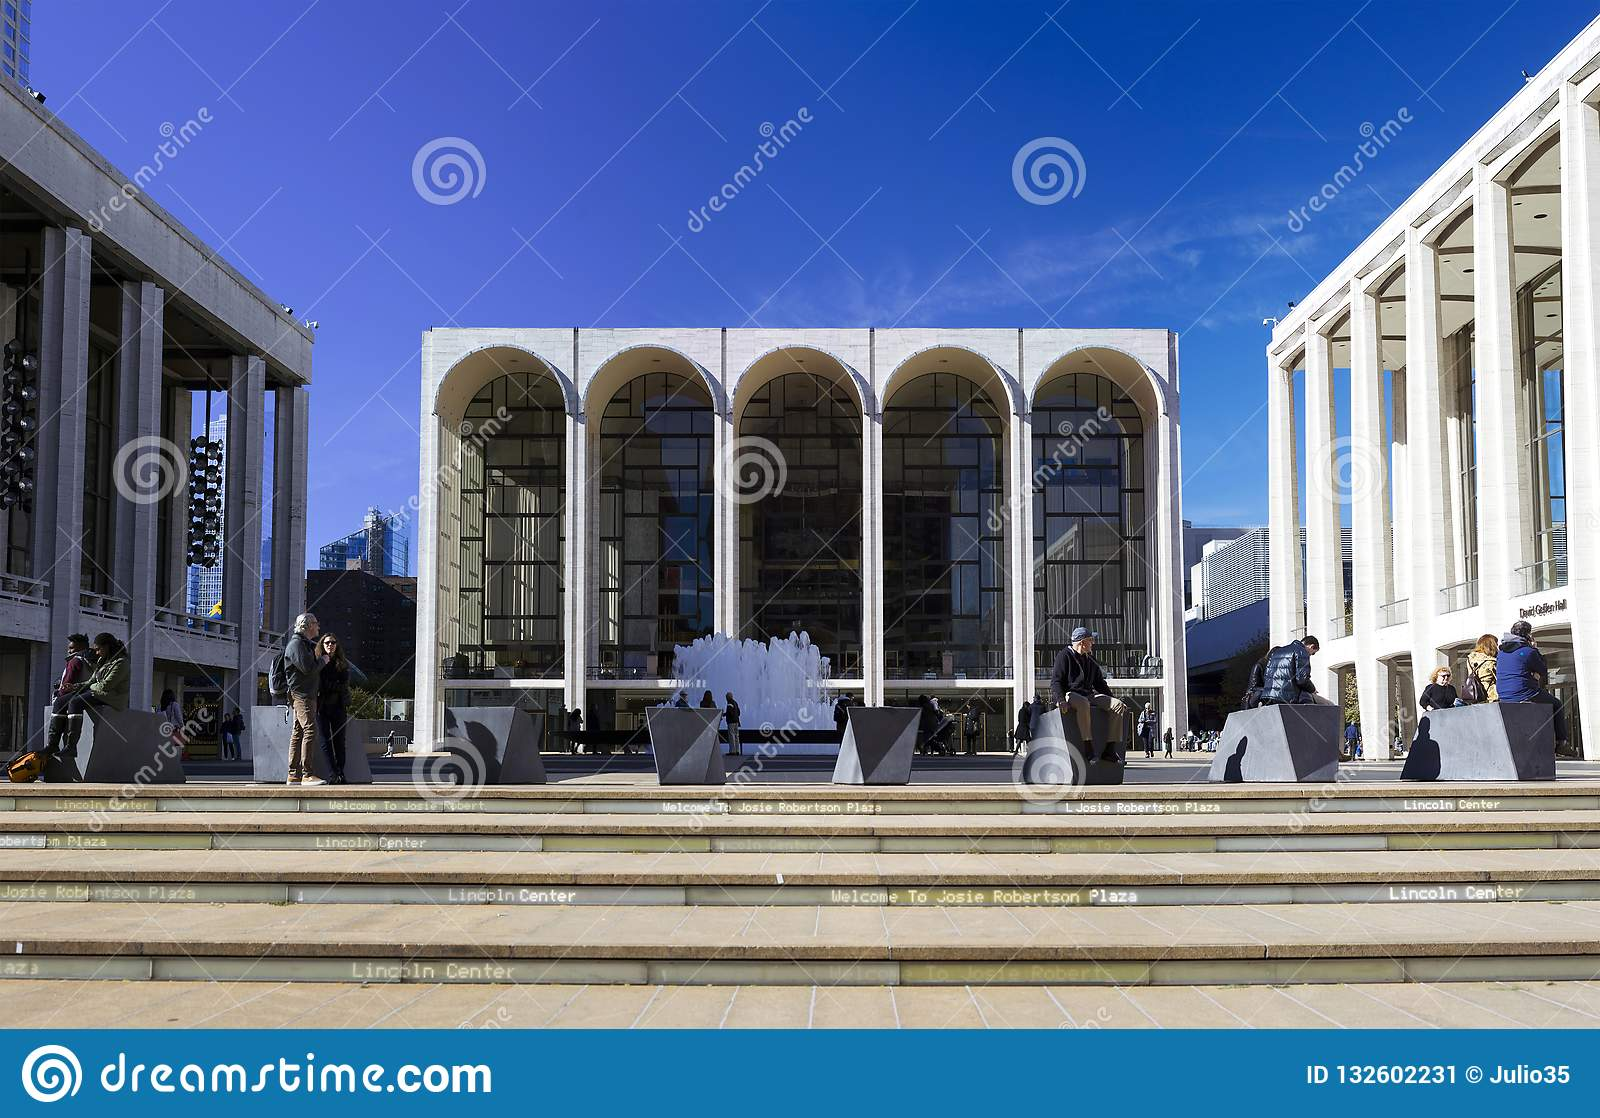 Metropolitan Opera House building in center photo located in New